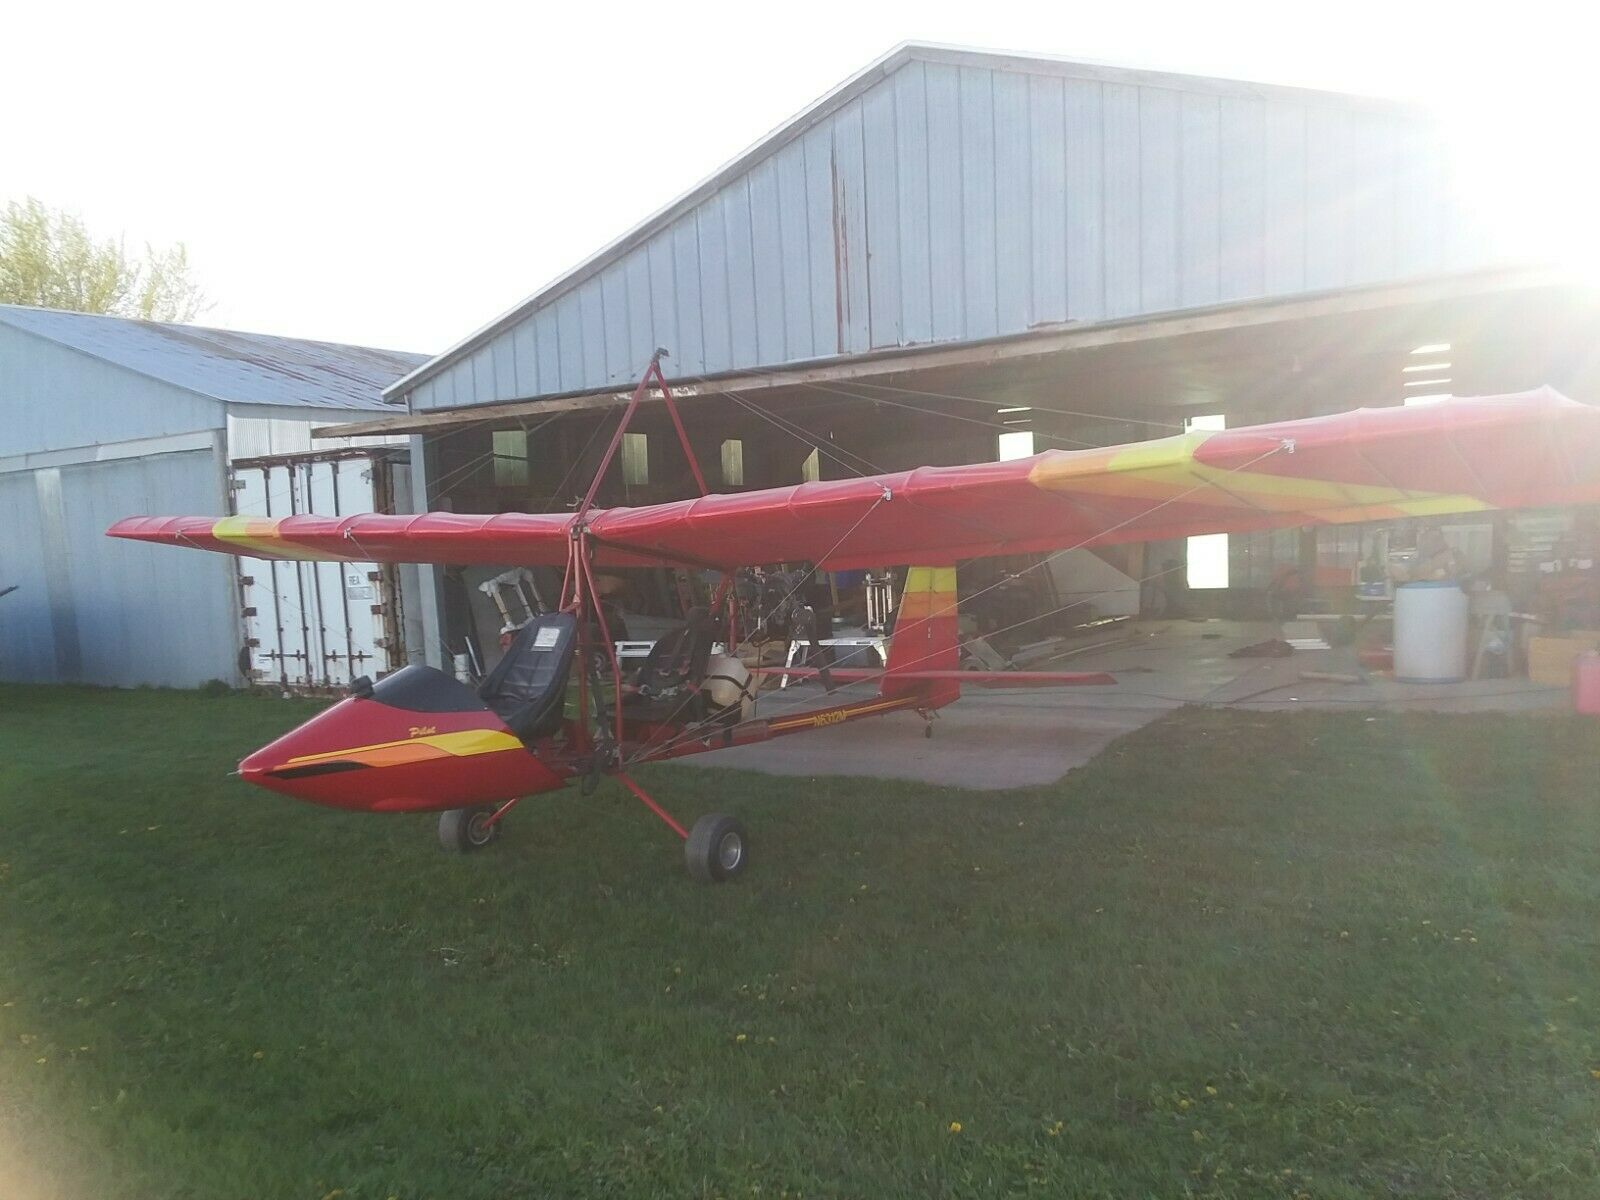 Ultralight 2007 Maxair Drifter 2 Place airplane for sale